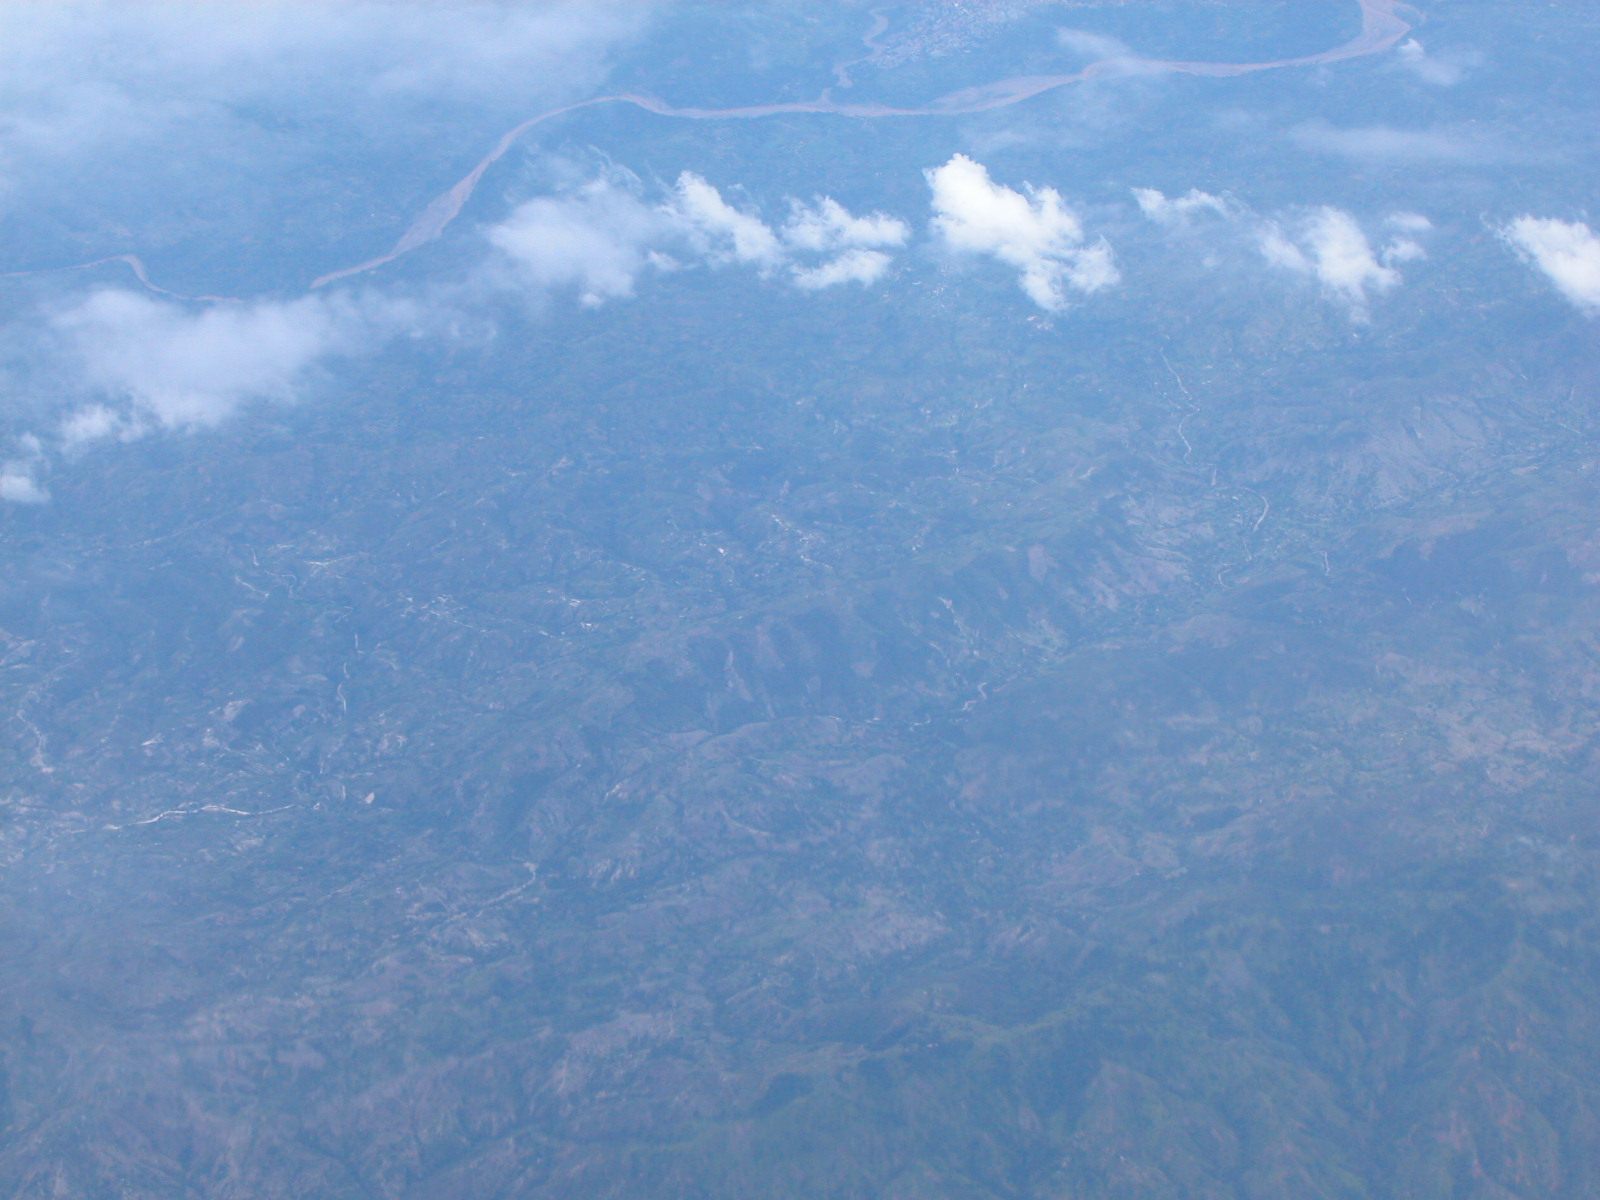 jacco sky view distance airoplane window blue clouds high altitude ground high up above the